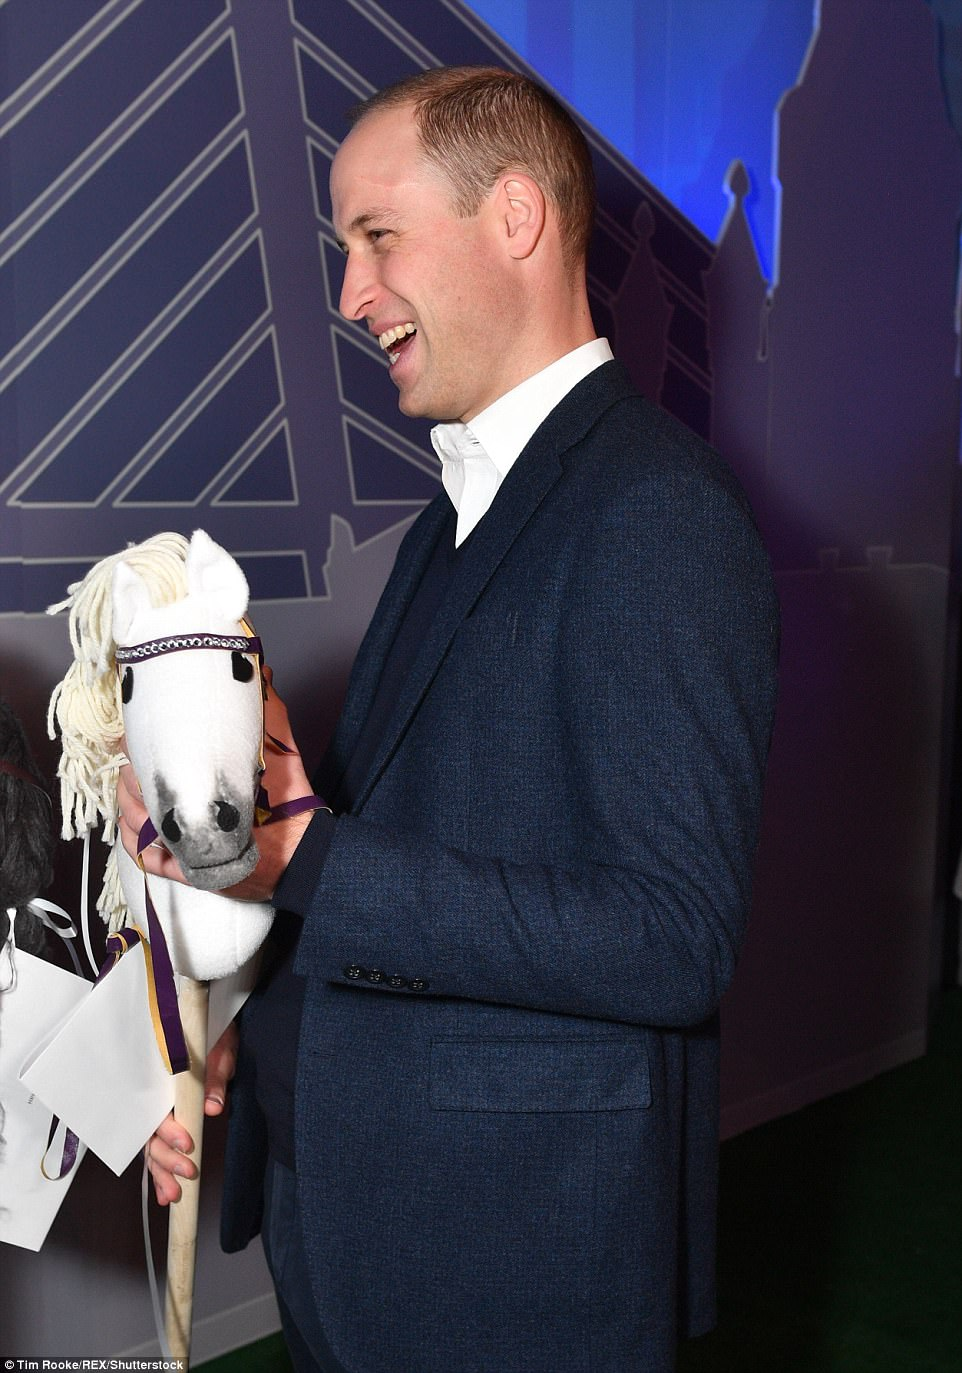 Prince William appeared delighted as he was presented with two hobby horses during a visit to a tech festival in Helsinki on Thursday